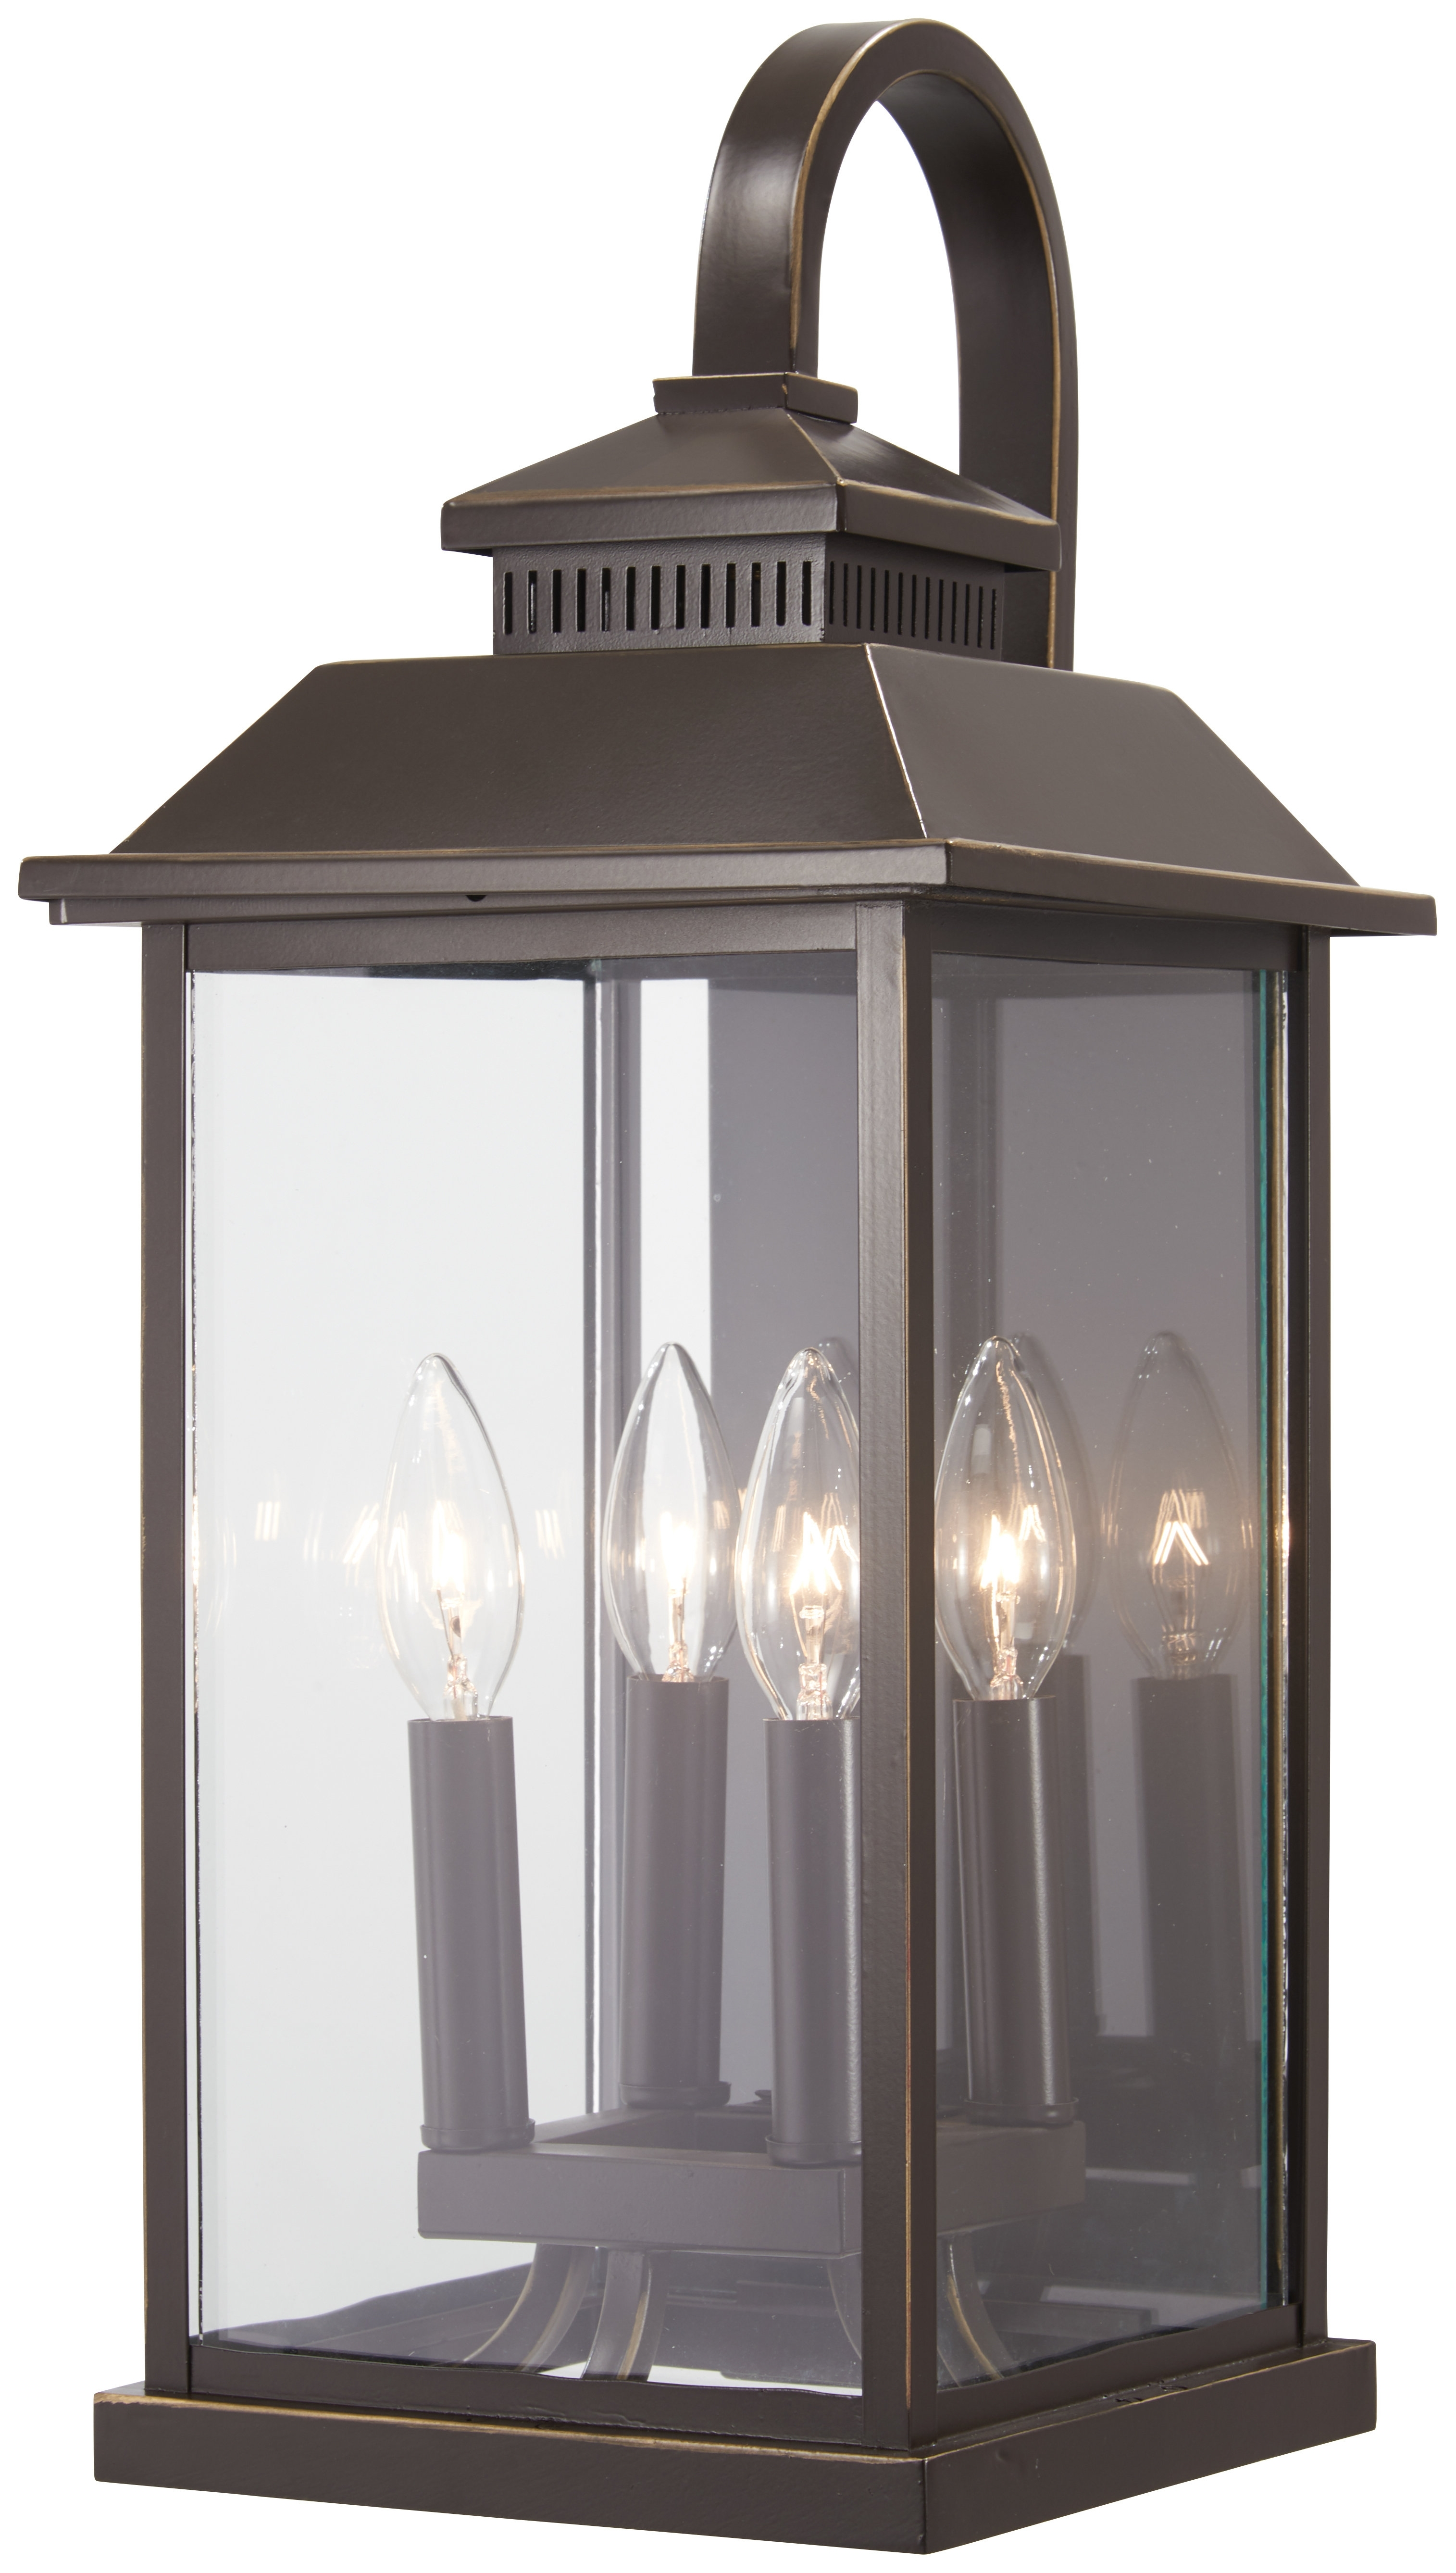 Alcott Hill Helms 4-Light Outdoor Wall Lantern | Wayfair pertaining to Helms Sideboards (Image 5 of 30)